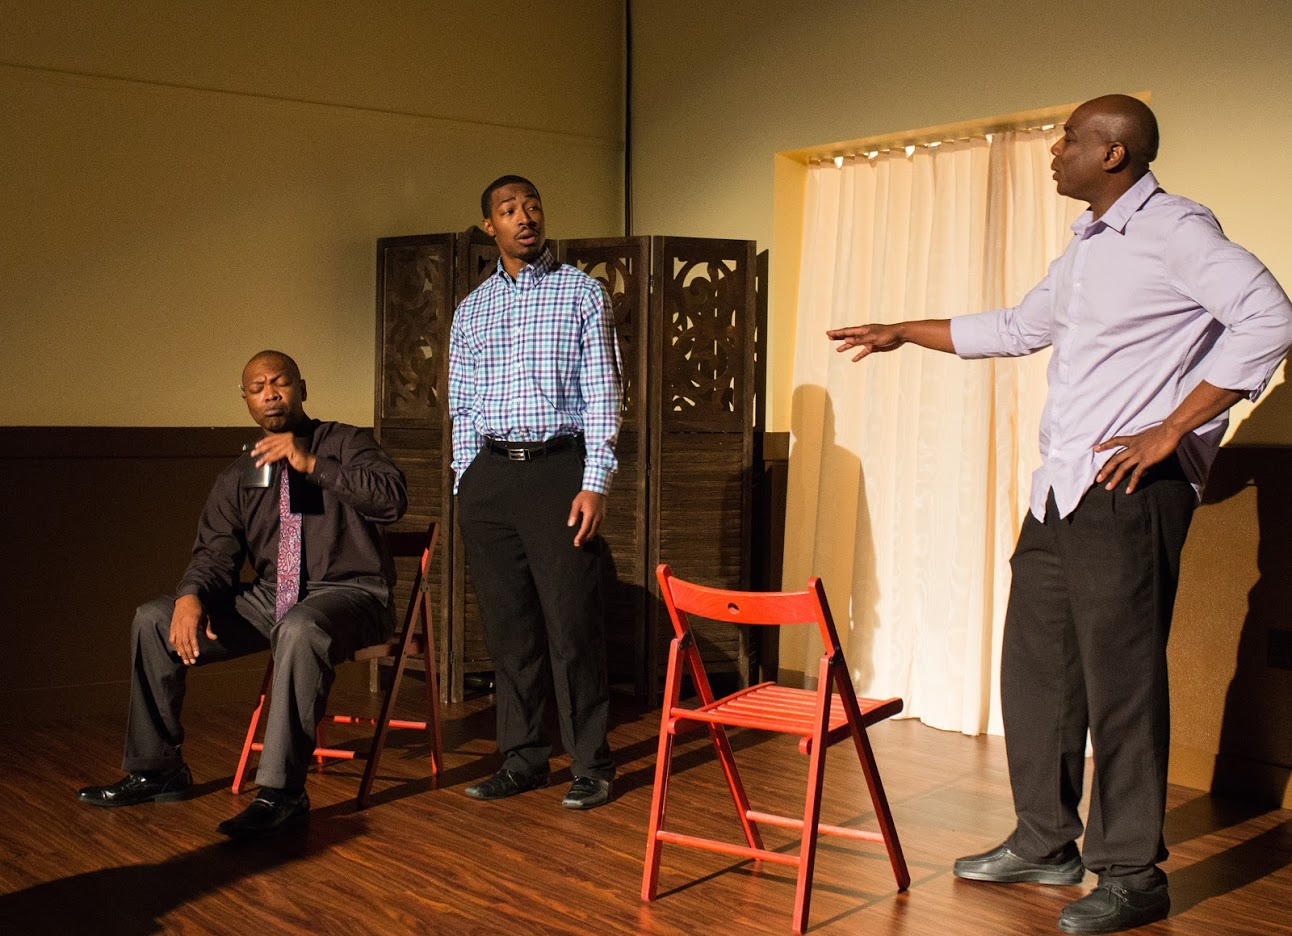 Confrontation-Theatre-Portland-Oregon-african-american-black-plays-production-image-20